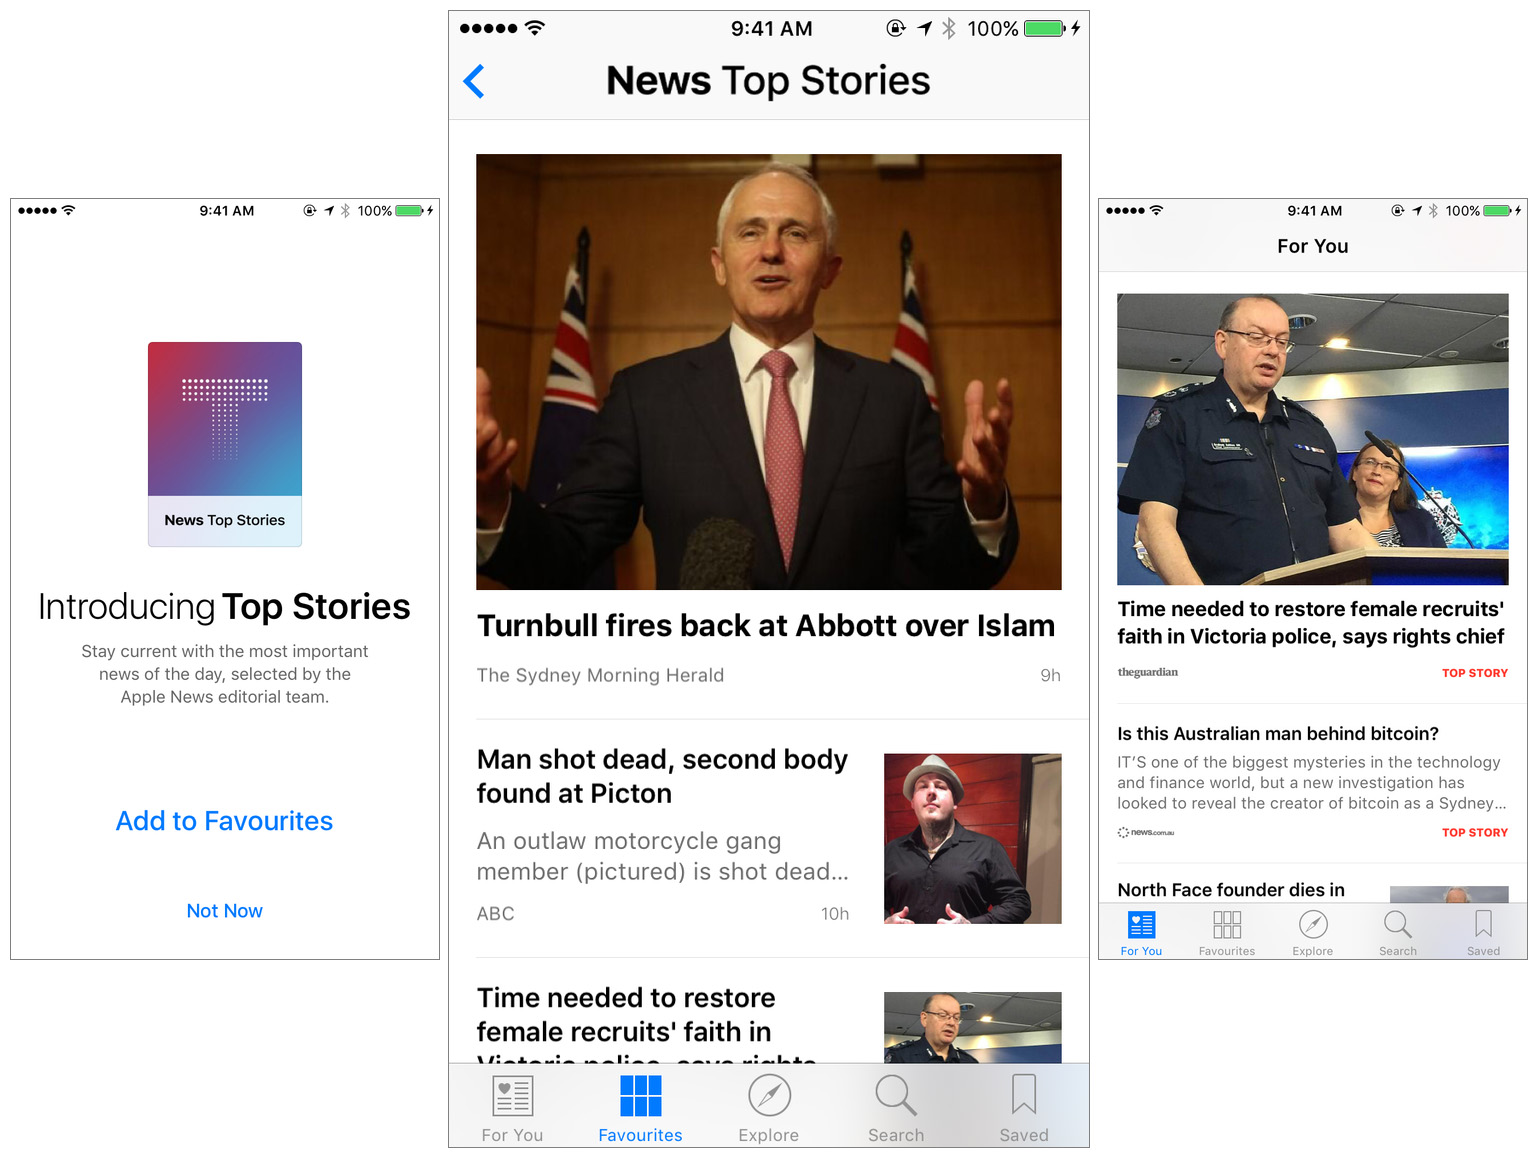 (L-R) The Apple News launch screen after you update to iOS 9.2, the Top Stories channel in my Favorites section, the For You section which features Top Stories (note the red tag on the right).